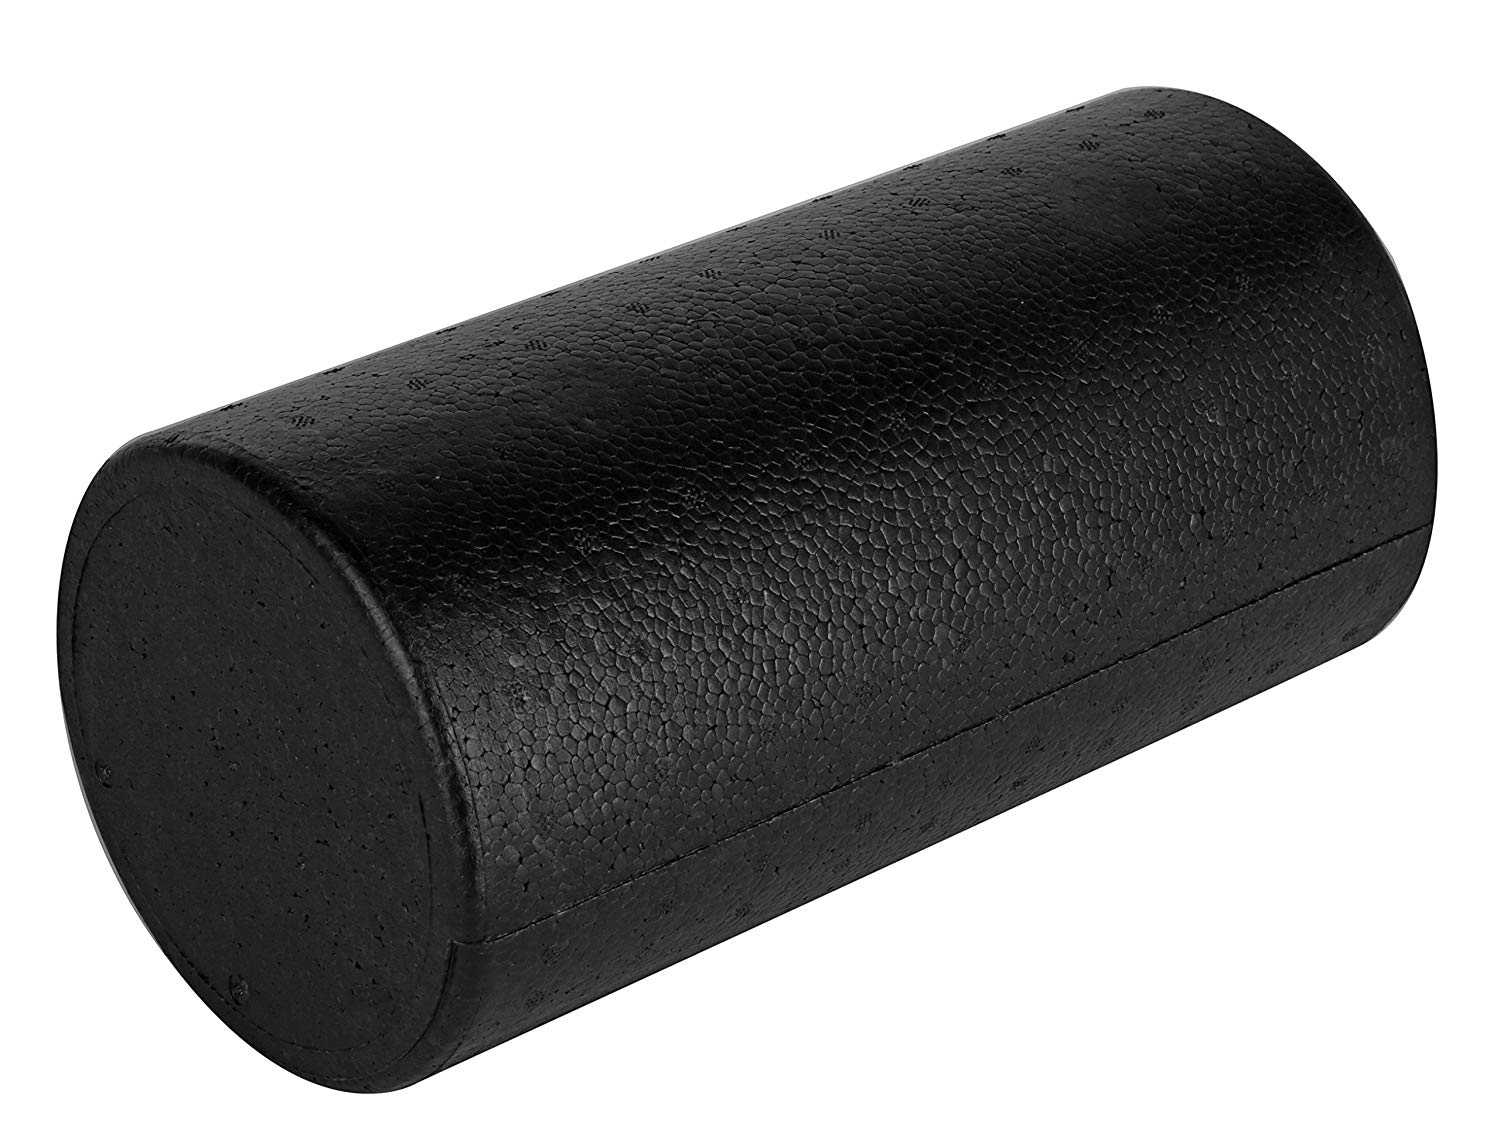 Who's it for?  dancers who work hard and get sore/tight muscles  This foam roller  ($7.99) does just the trick when you wake up feeling sore after a night of hard work in the studio!